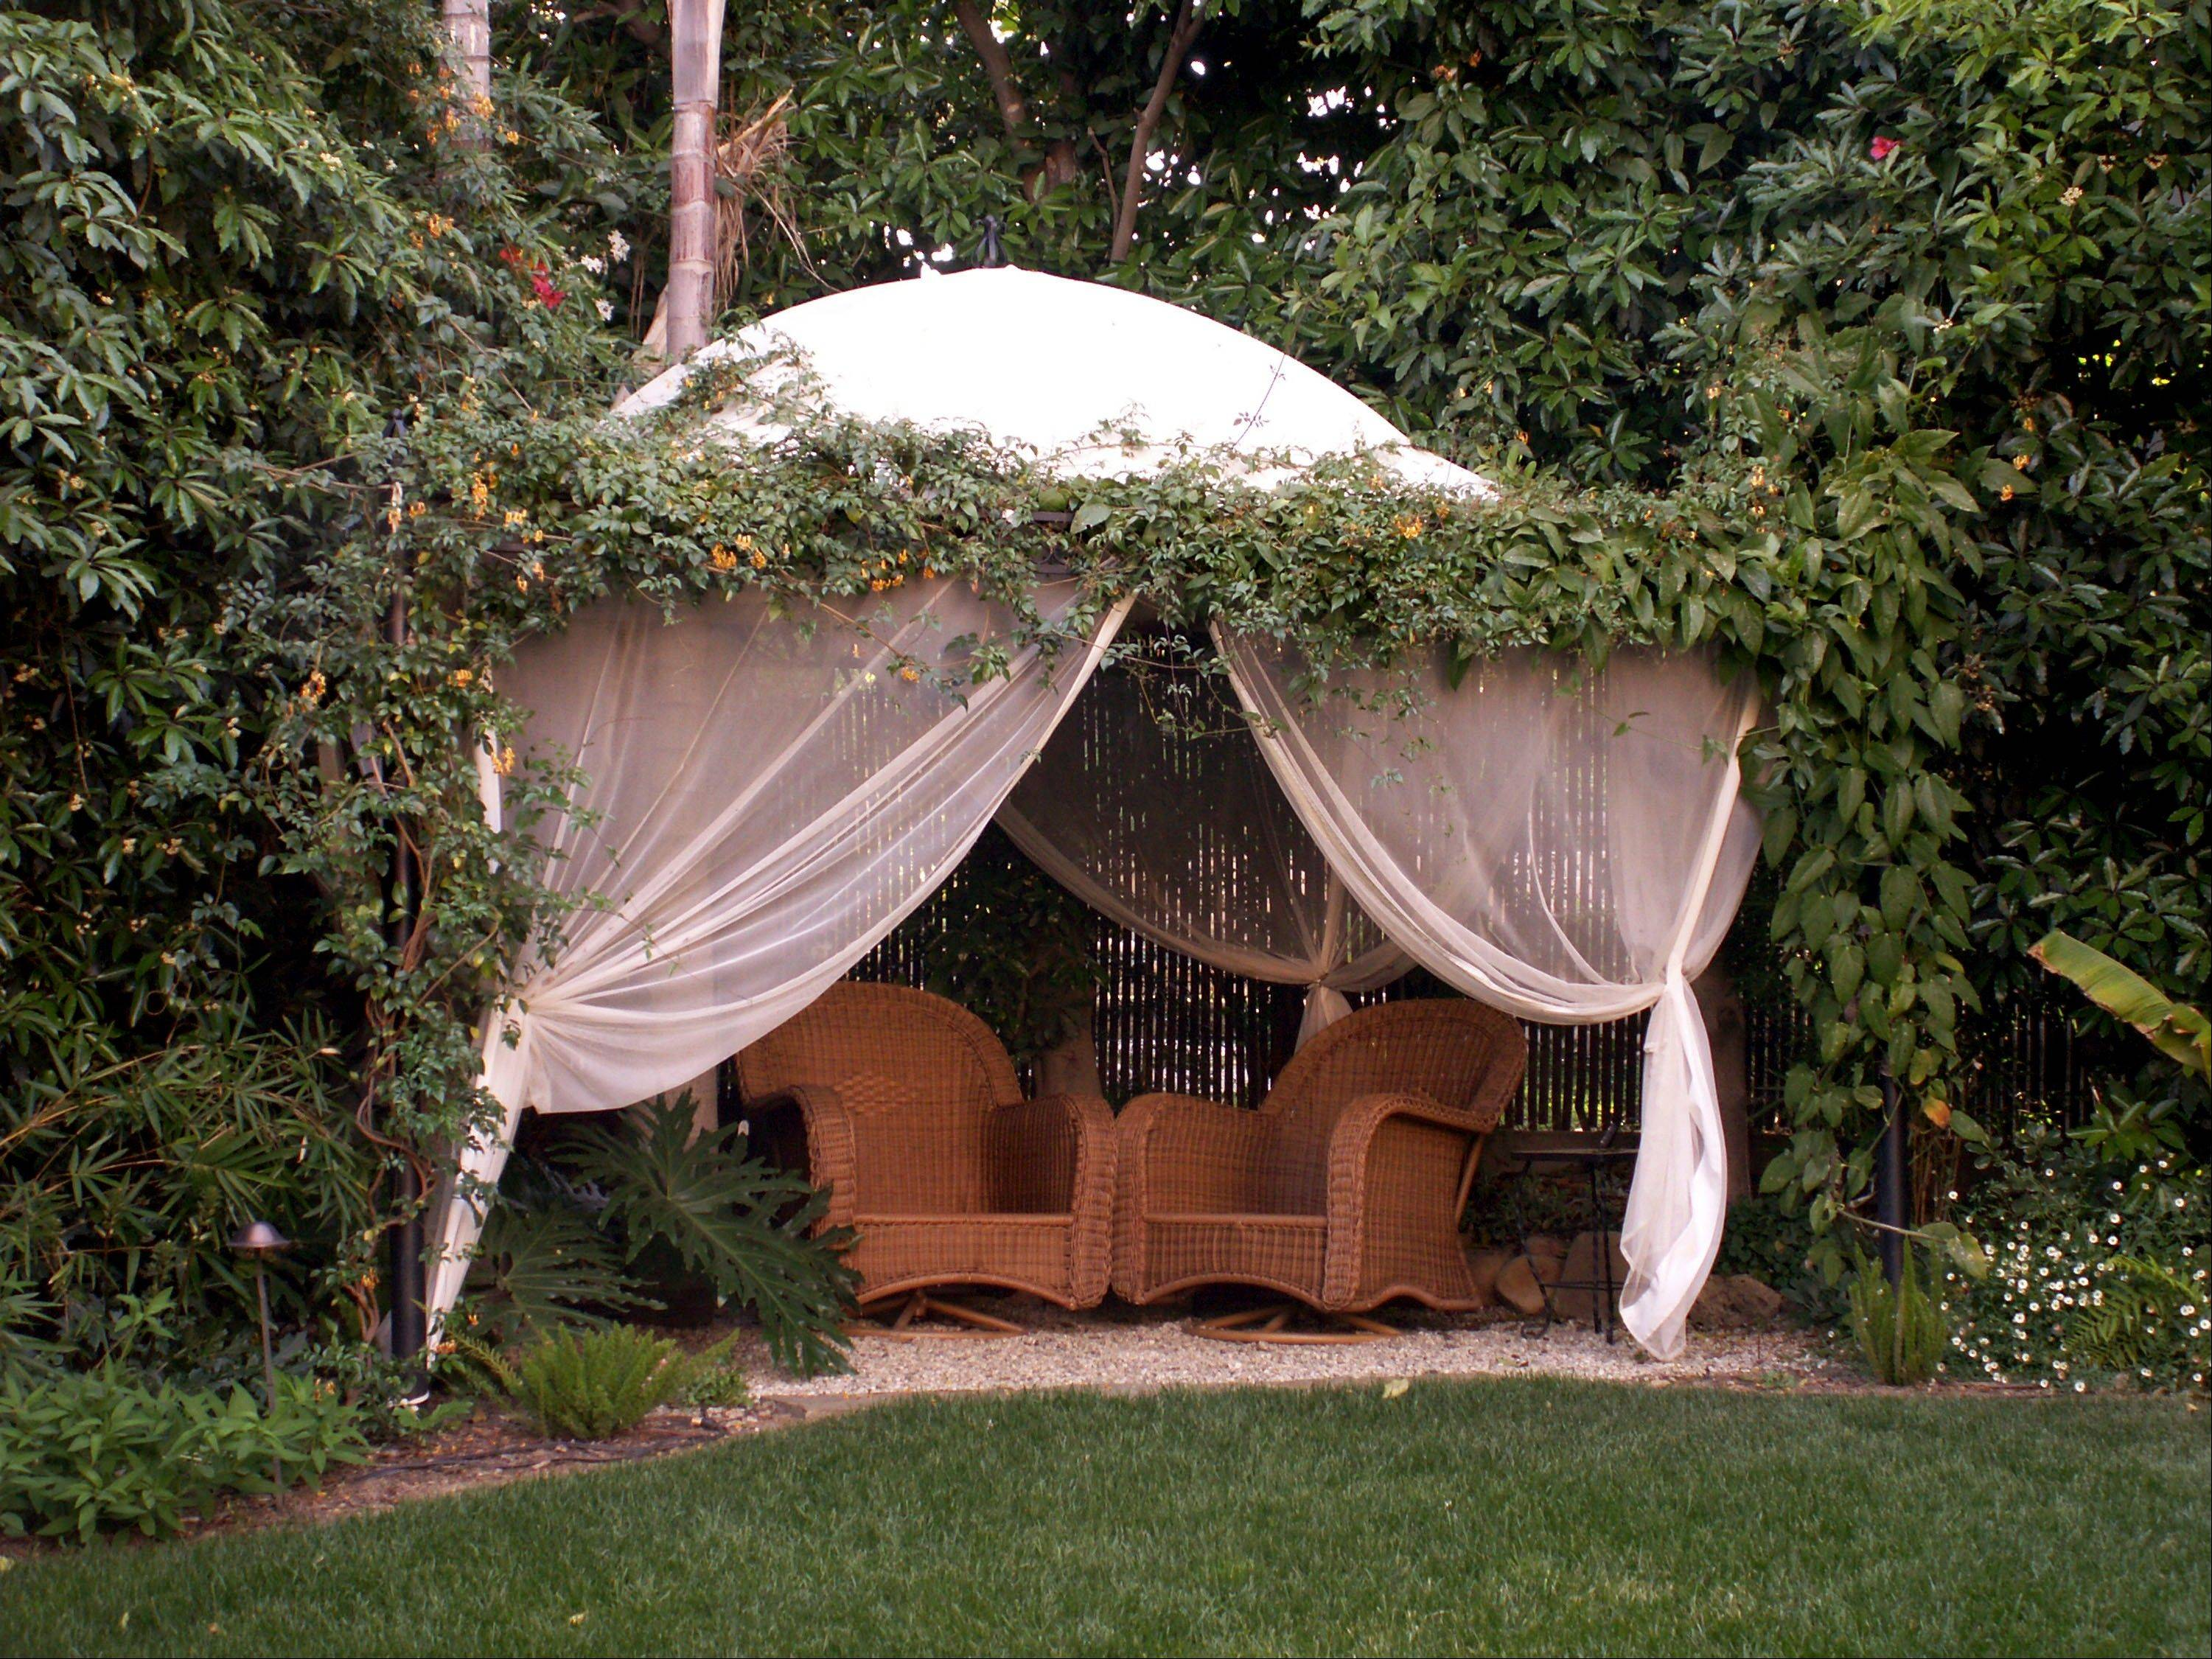 Landscape designers reveal the creative ways they can make an area of privacy in your yard.